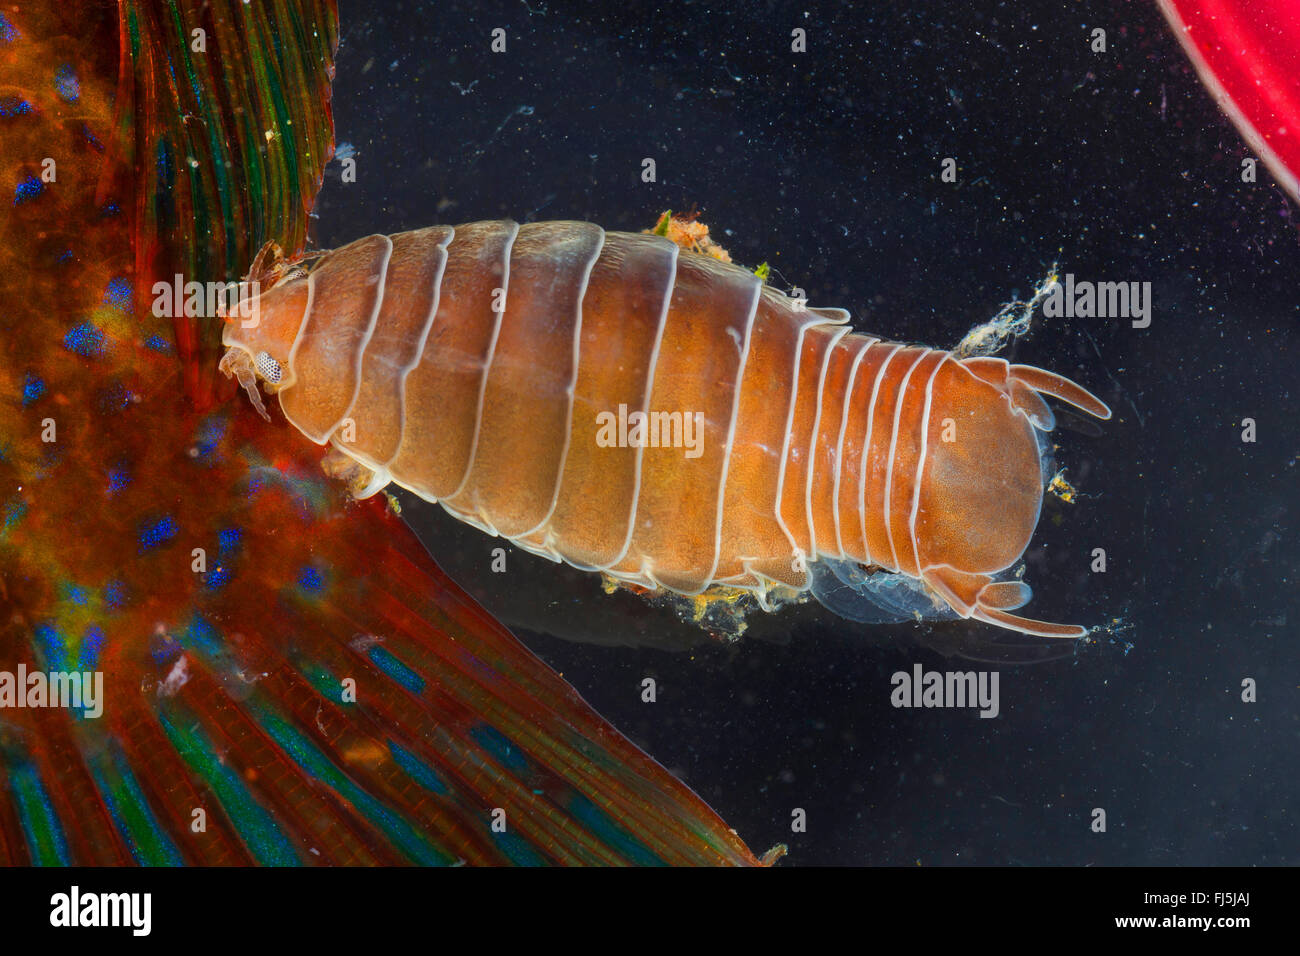 fish-flea, fish louse, parasitic fish isopod (Anilocra spec.), parasitizing on a wrasse - Stock Image